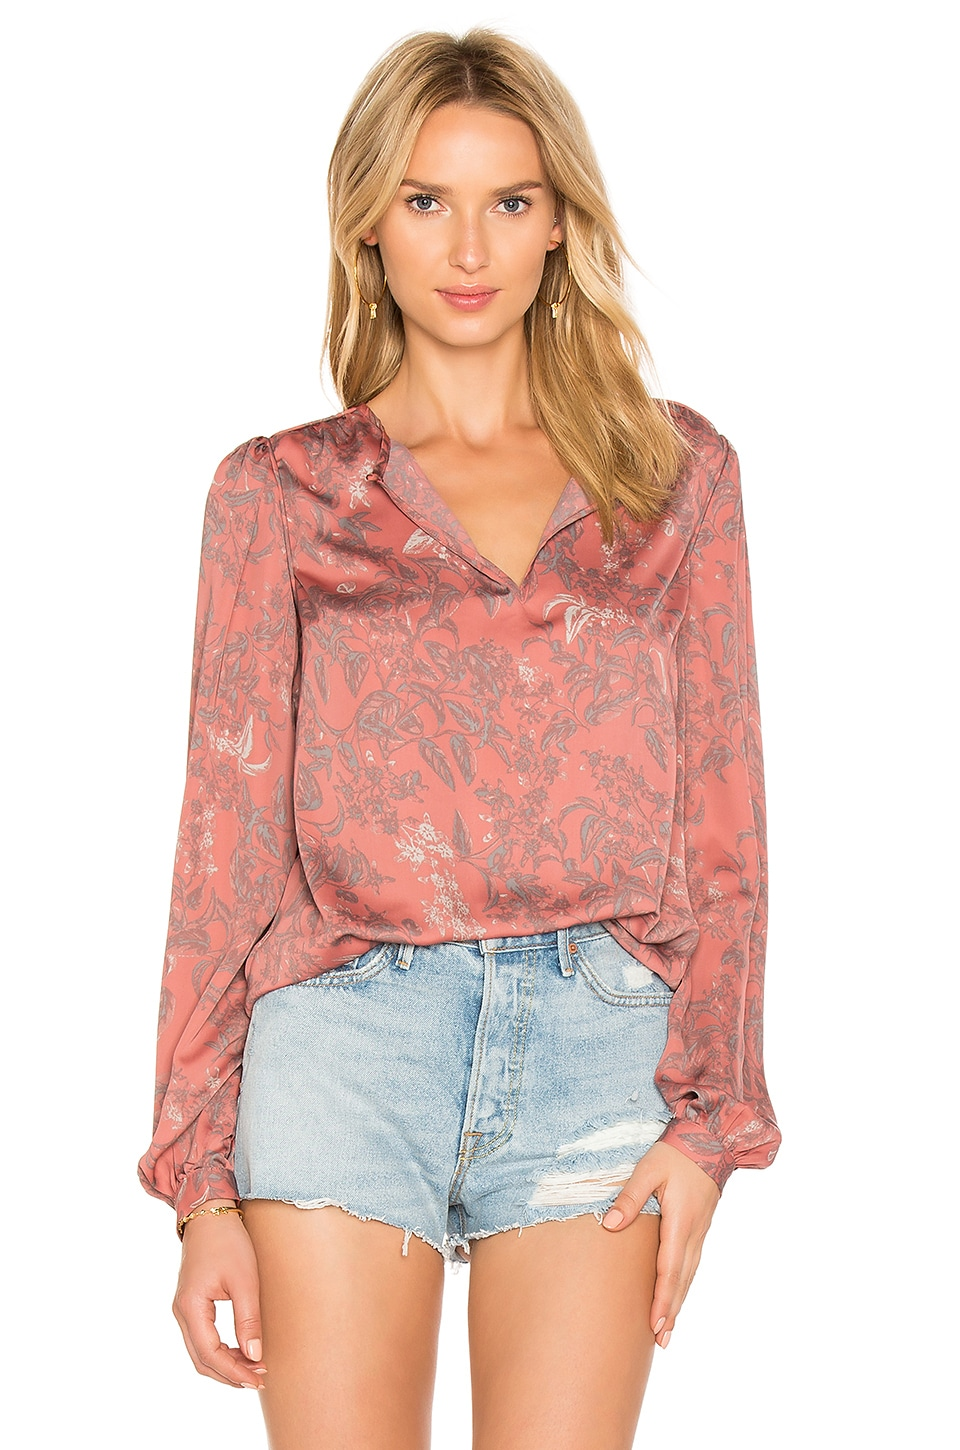 House of Harlow 1960 x REVOLVE Seymore Blouse in Delicate Floral